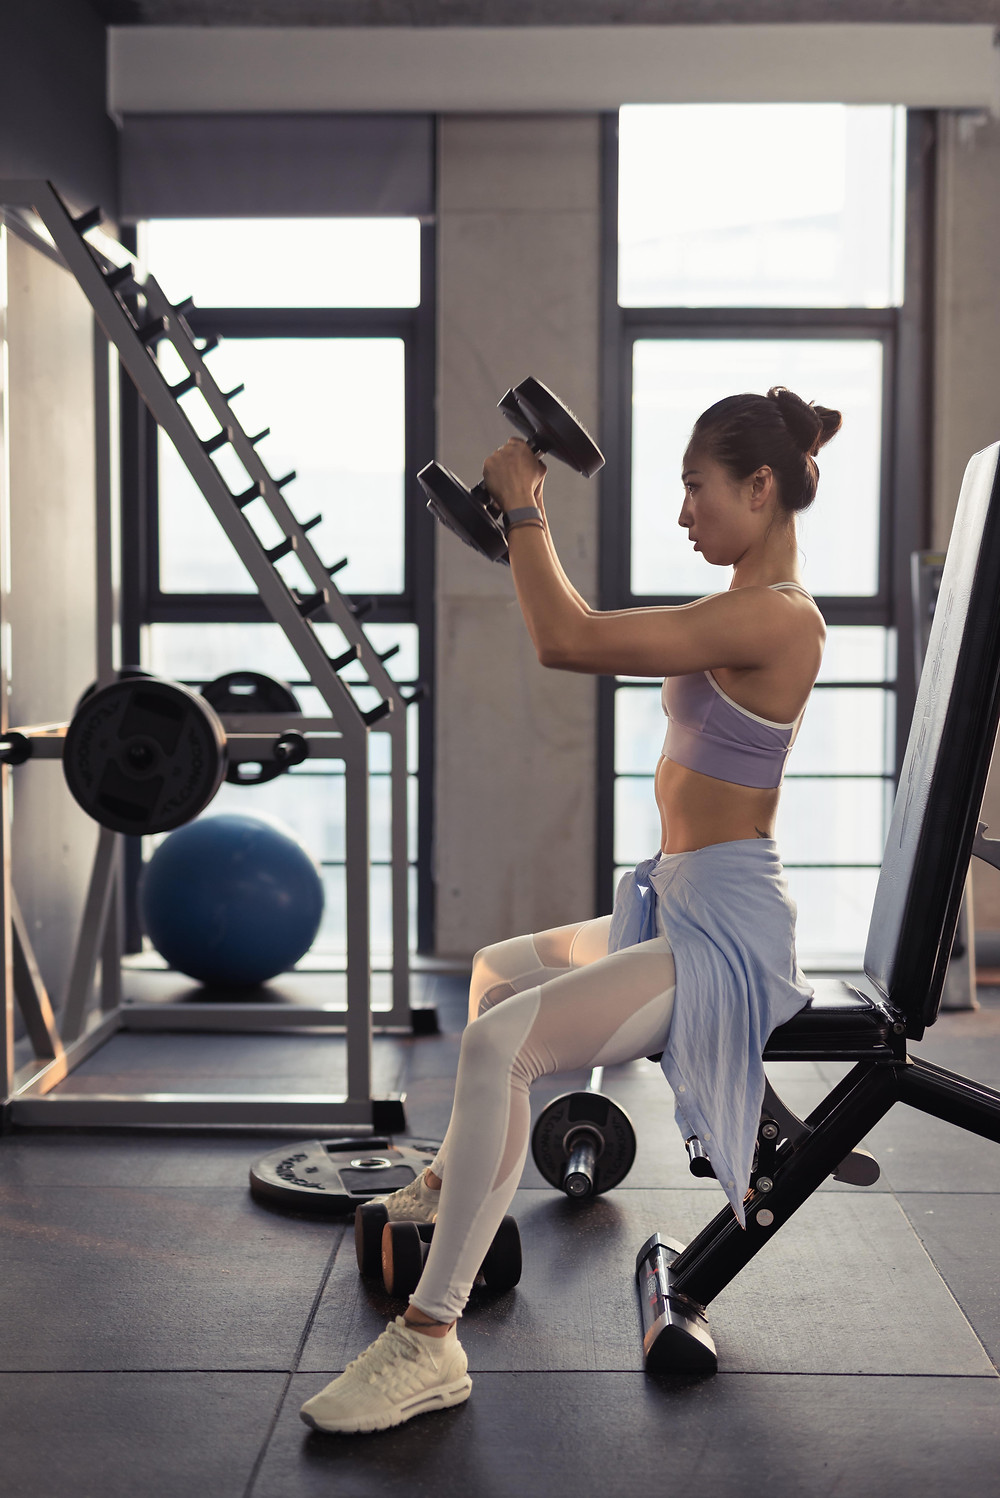 A woman lifts heavy weights in a gym